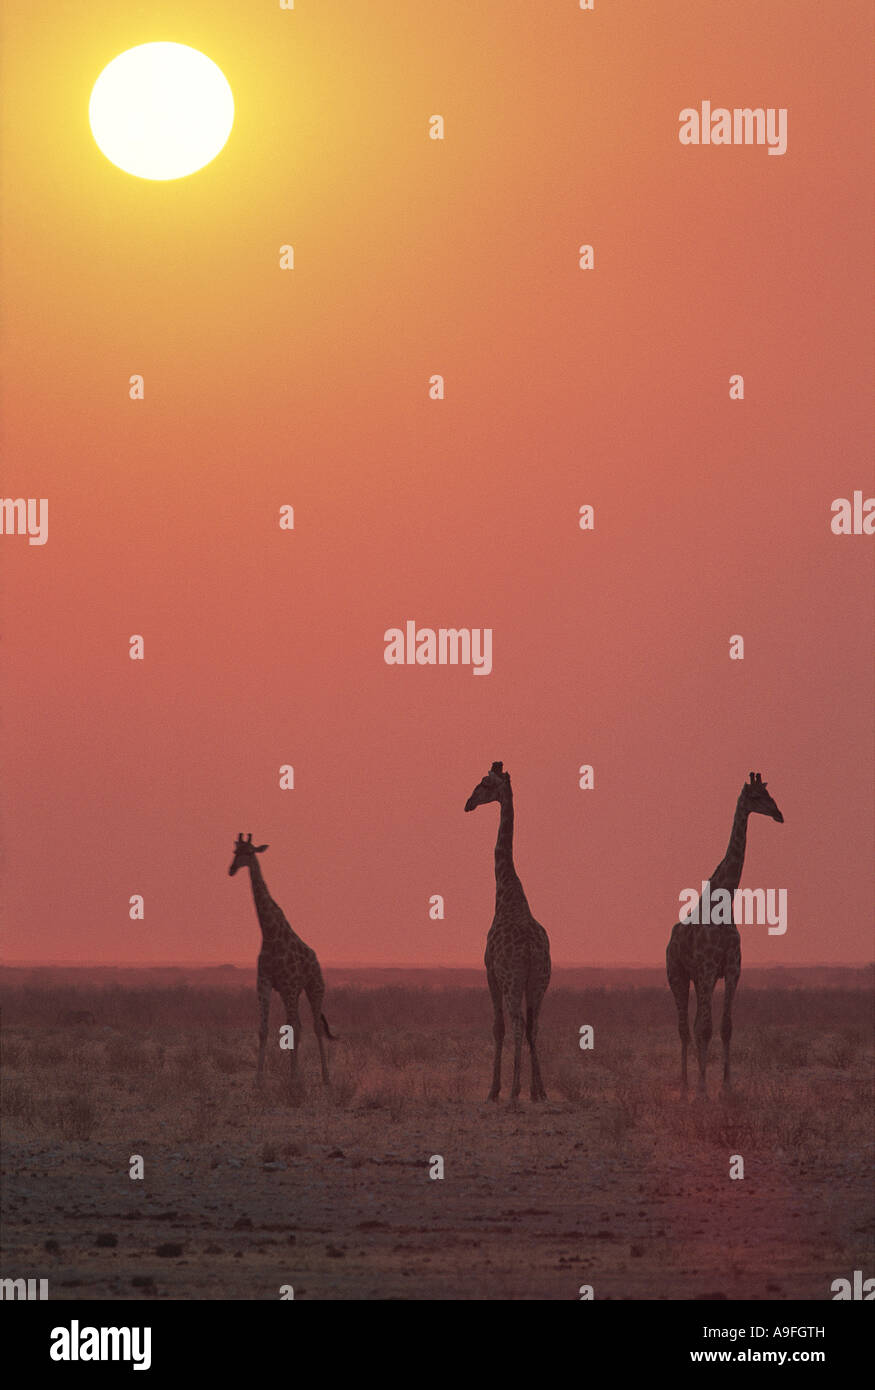 Common Giraffe Etosha National Park Namibia - Stock Image